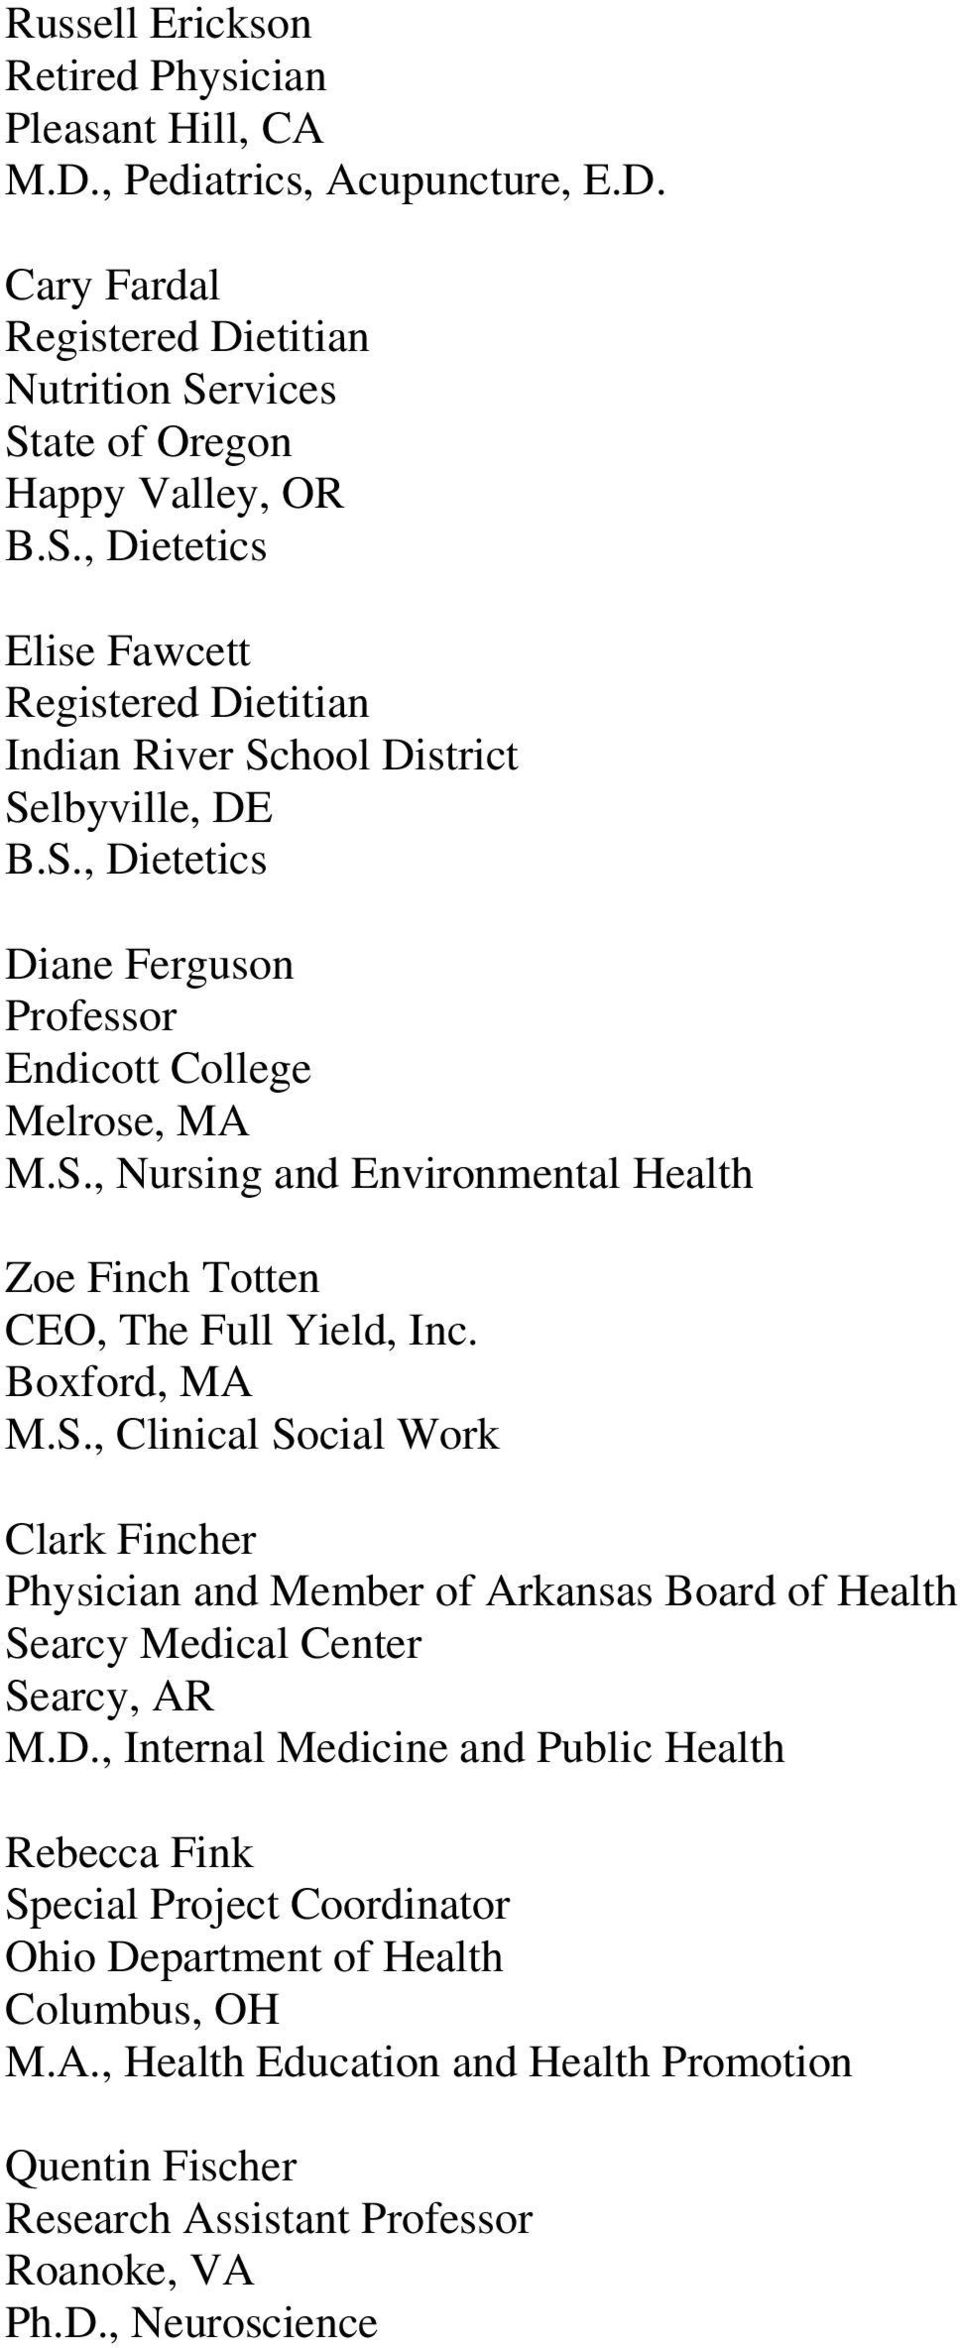 S., Nursing and Environmental Health Zoe Finch Totten CEO, The Full Yield, Inc. Boxford, MA M.S., Clinical Social Work Clark Fincher and Member of Arkansas Board of Health Searcy Medical Center Searcy, AR M.